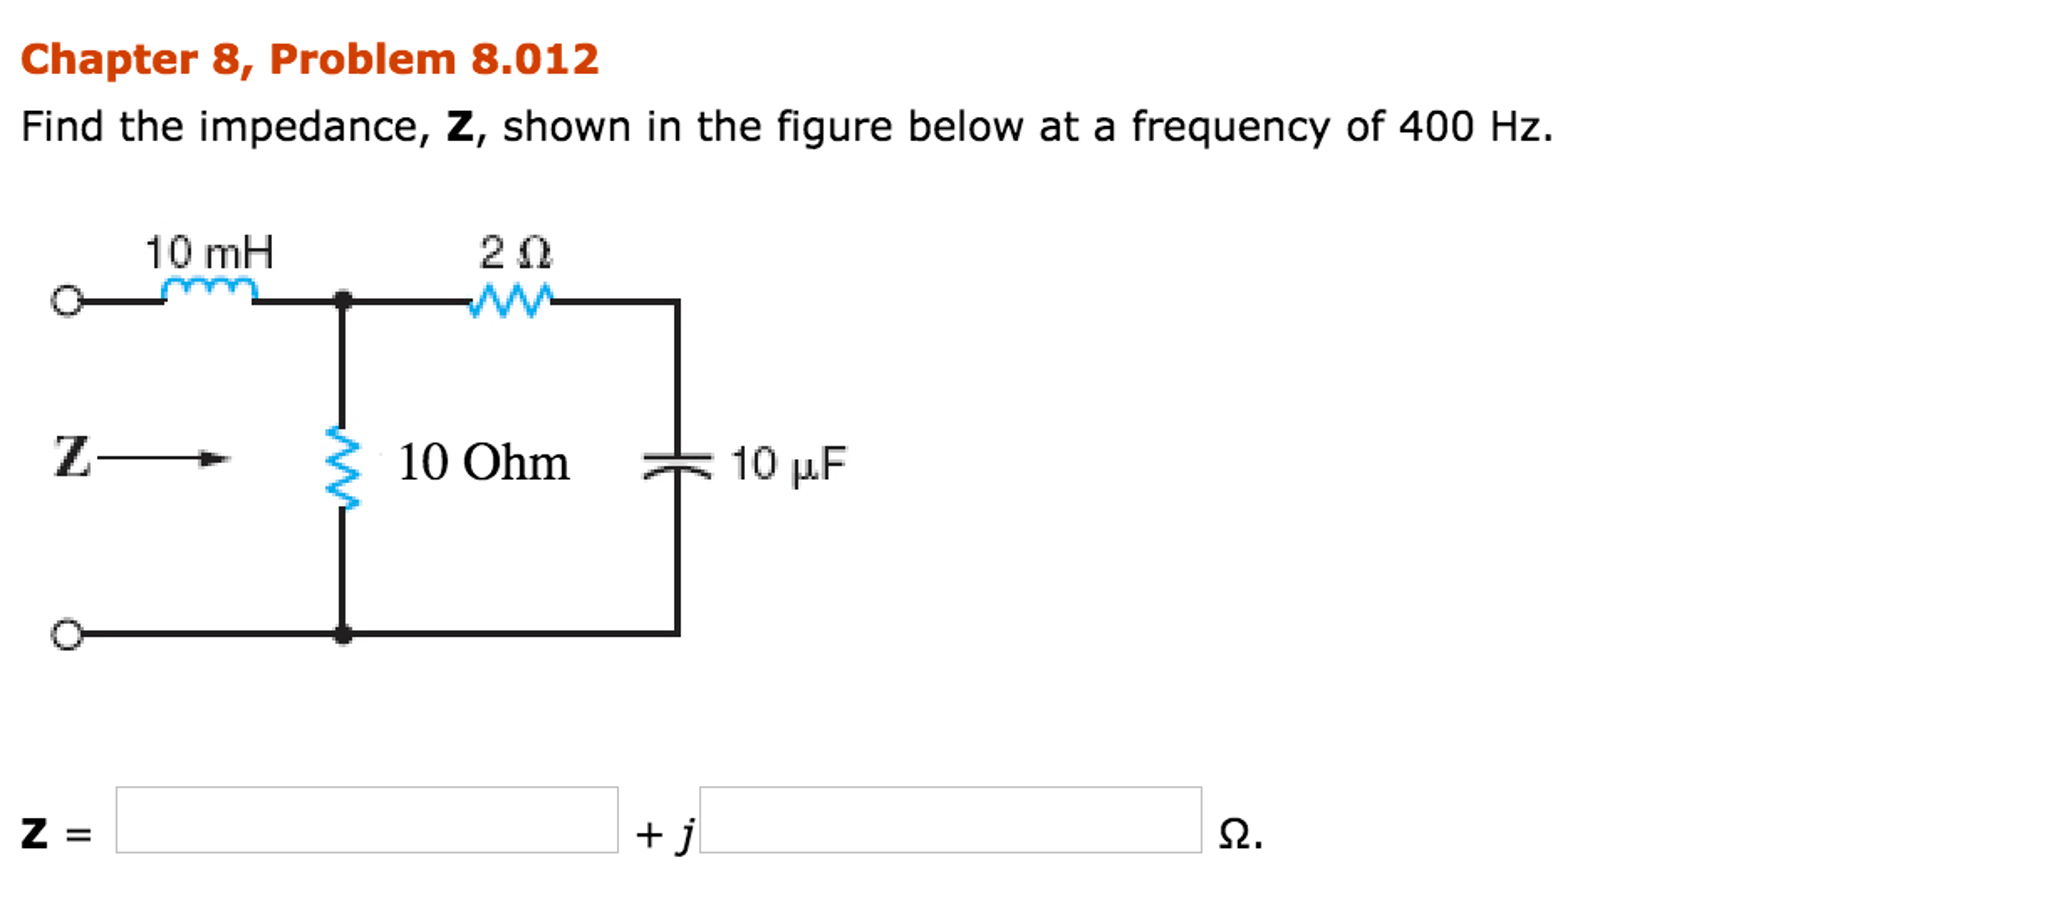 Electrical engineering archive november 20 2016 chegg chapter 8 problem 8012 find the impedance z sh fandeluxe Image collections